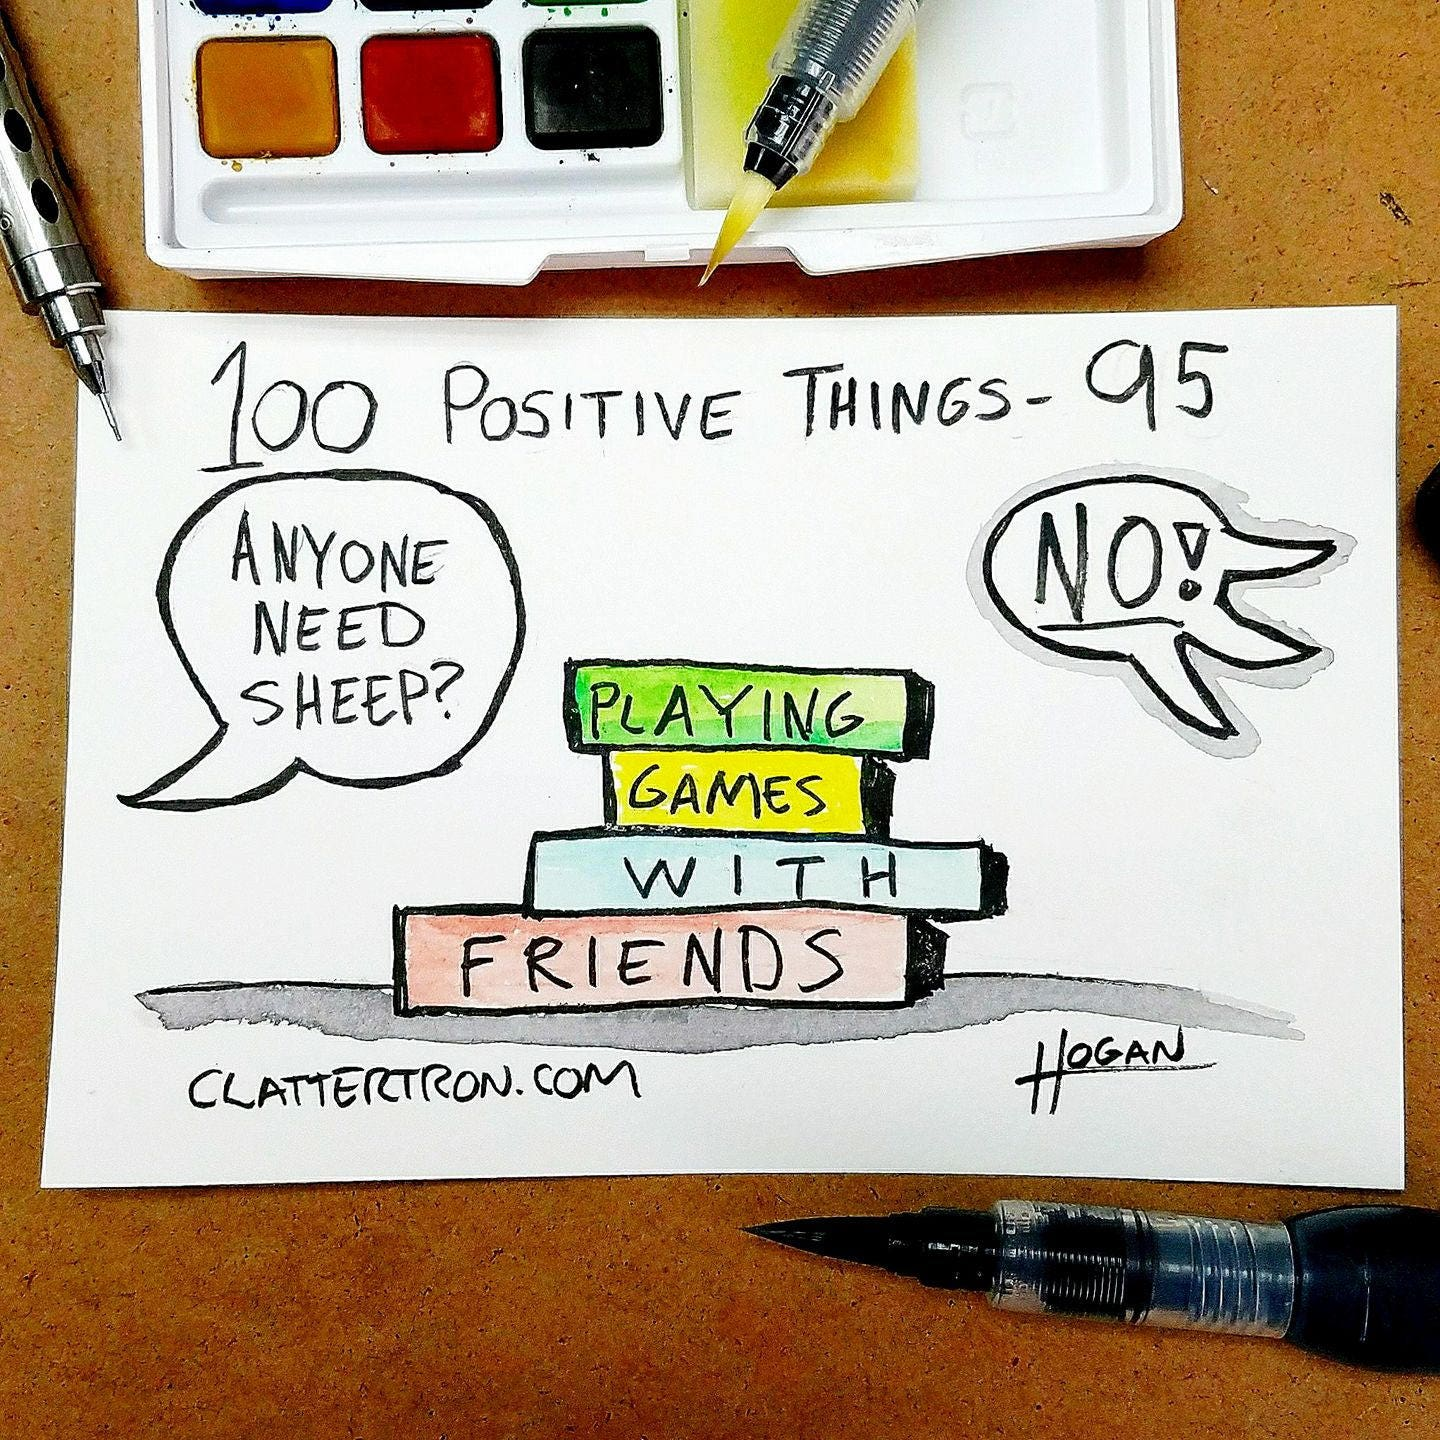 100 Positive Things Drawing 95 Playing Games With Friends Etsy